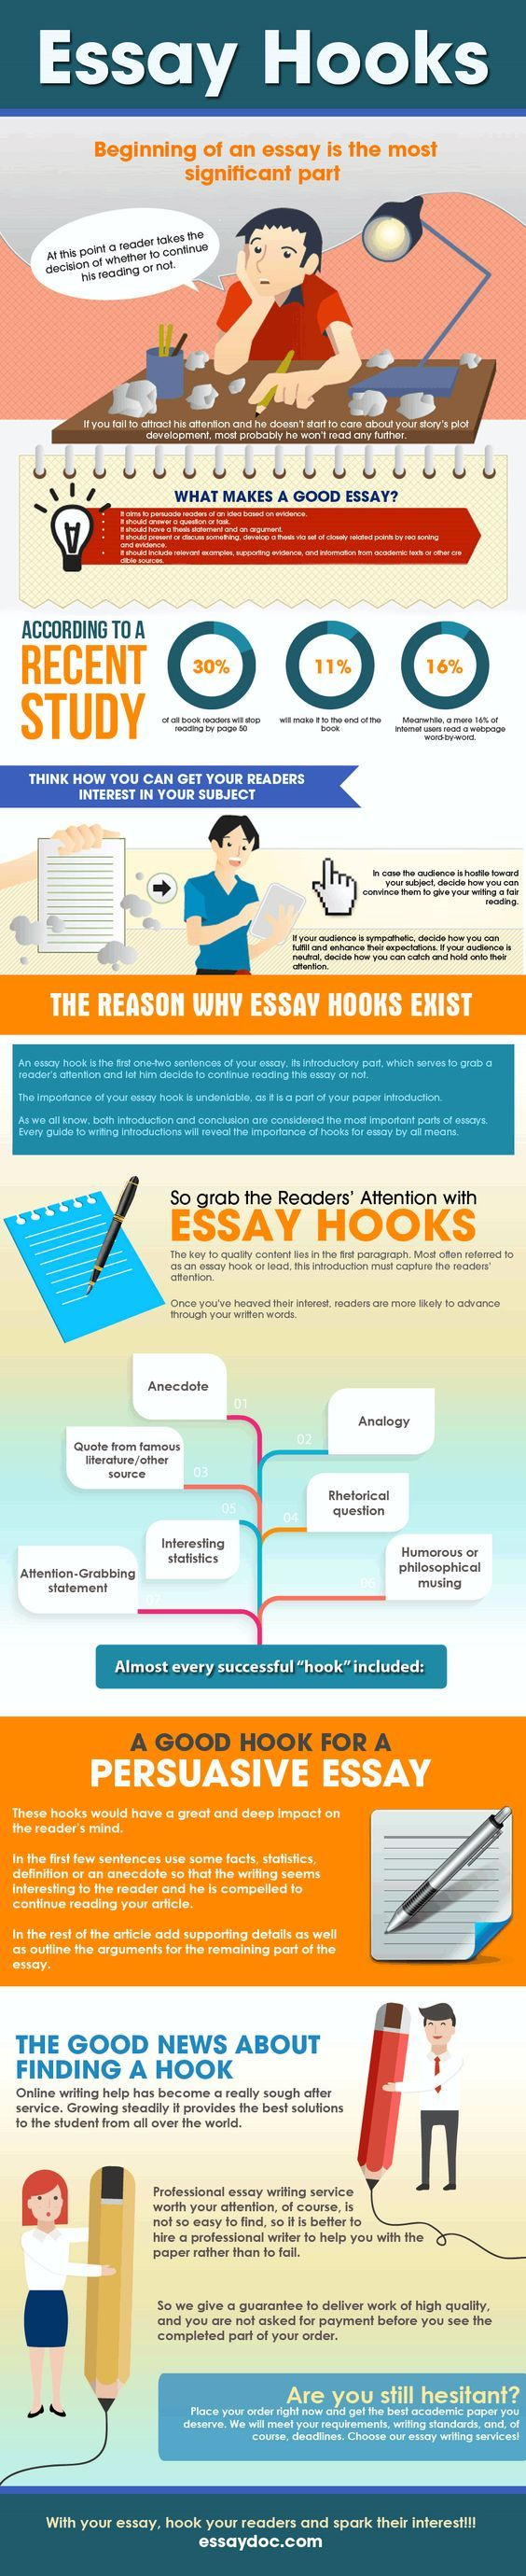 best courses images essay writing teaching 18 infographics that will teach you how to write an a research paper or essay